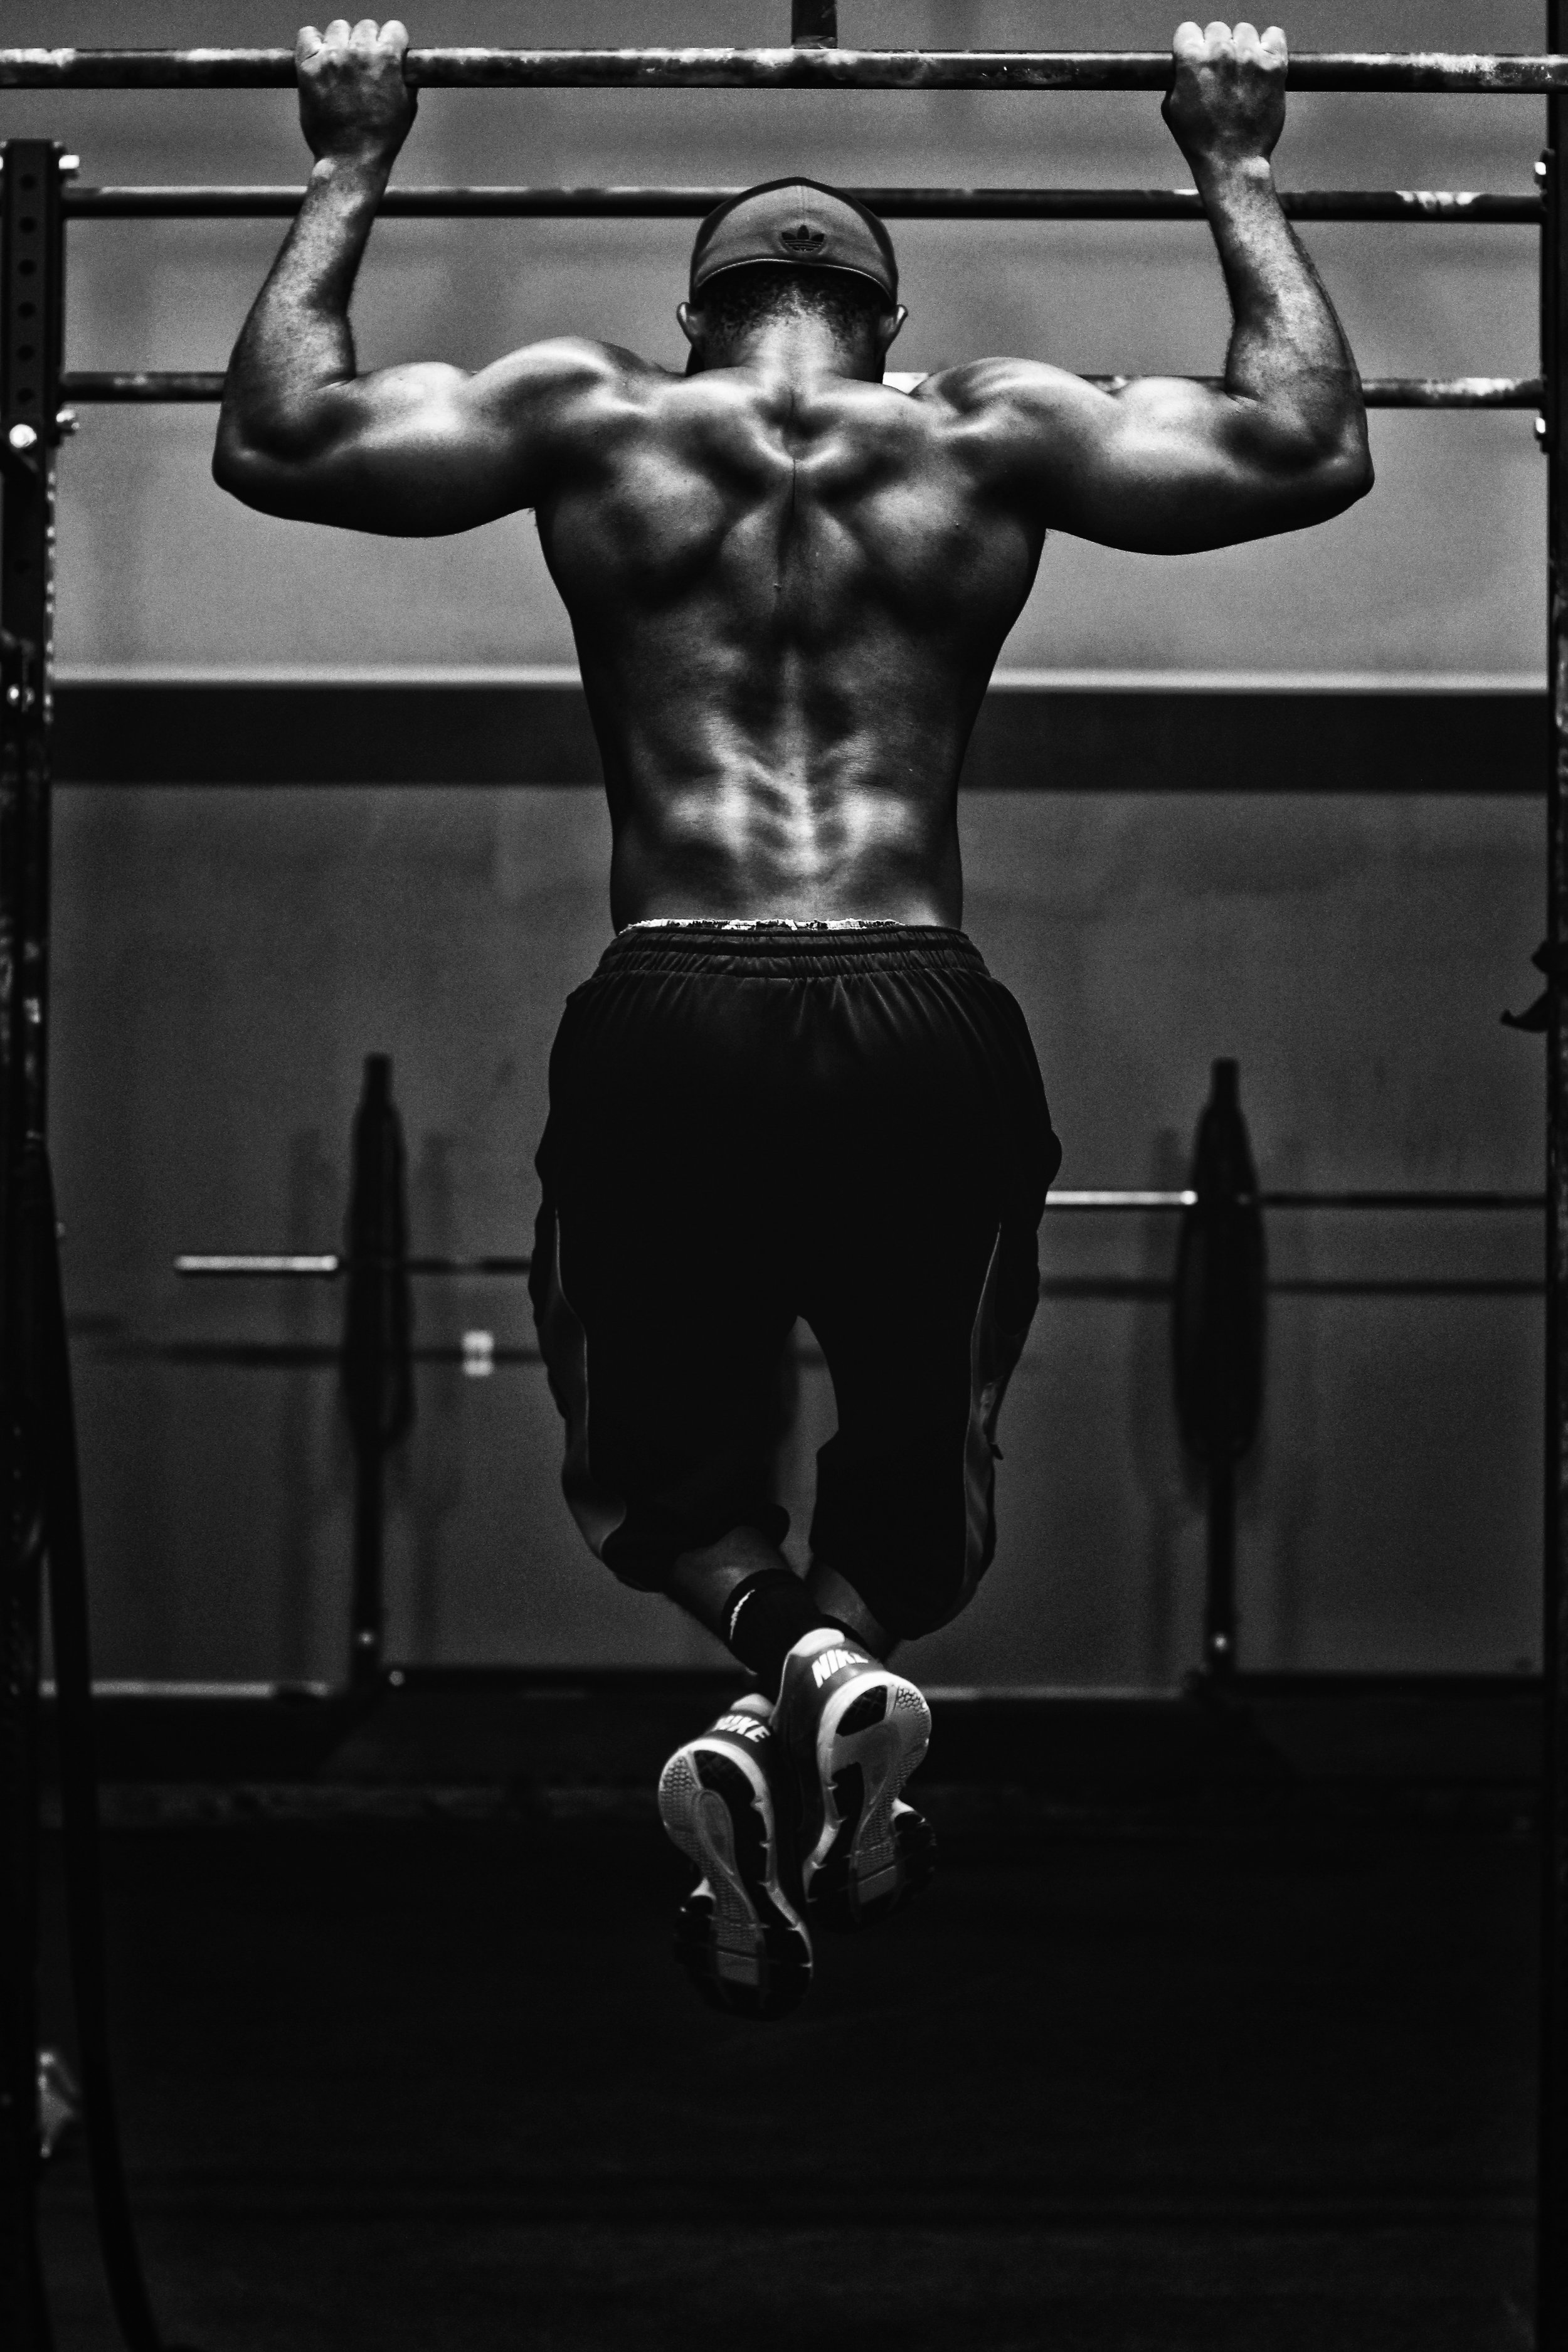 Keeping your workout simple, time centered and challenging.